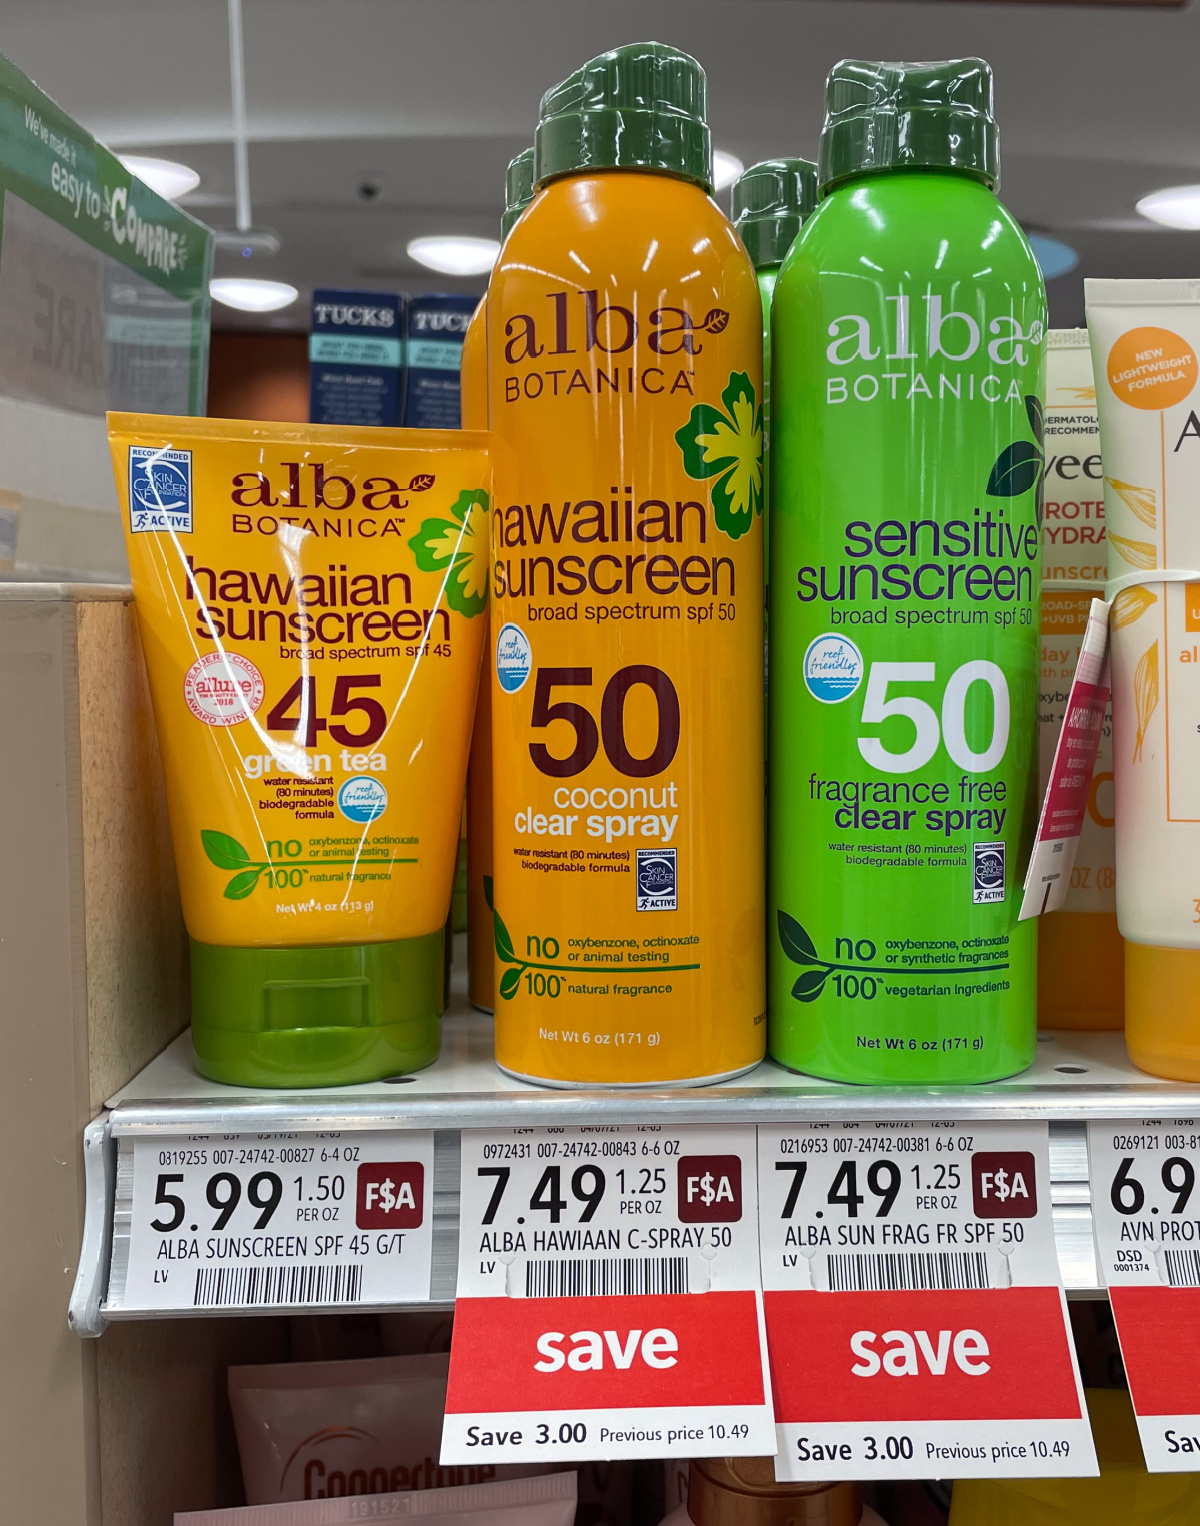 Stock Up On Fantastic Sunscreen And Save - Alba Botanica Is On Sale Now At Publix on I Heart Publix